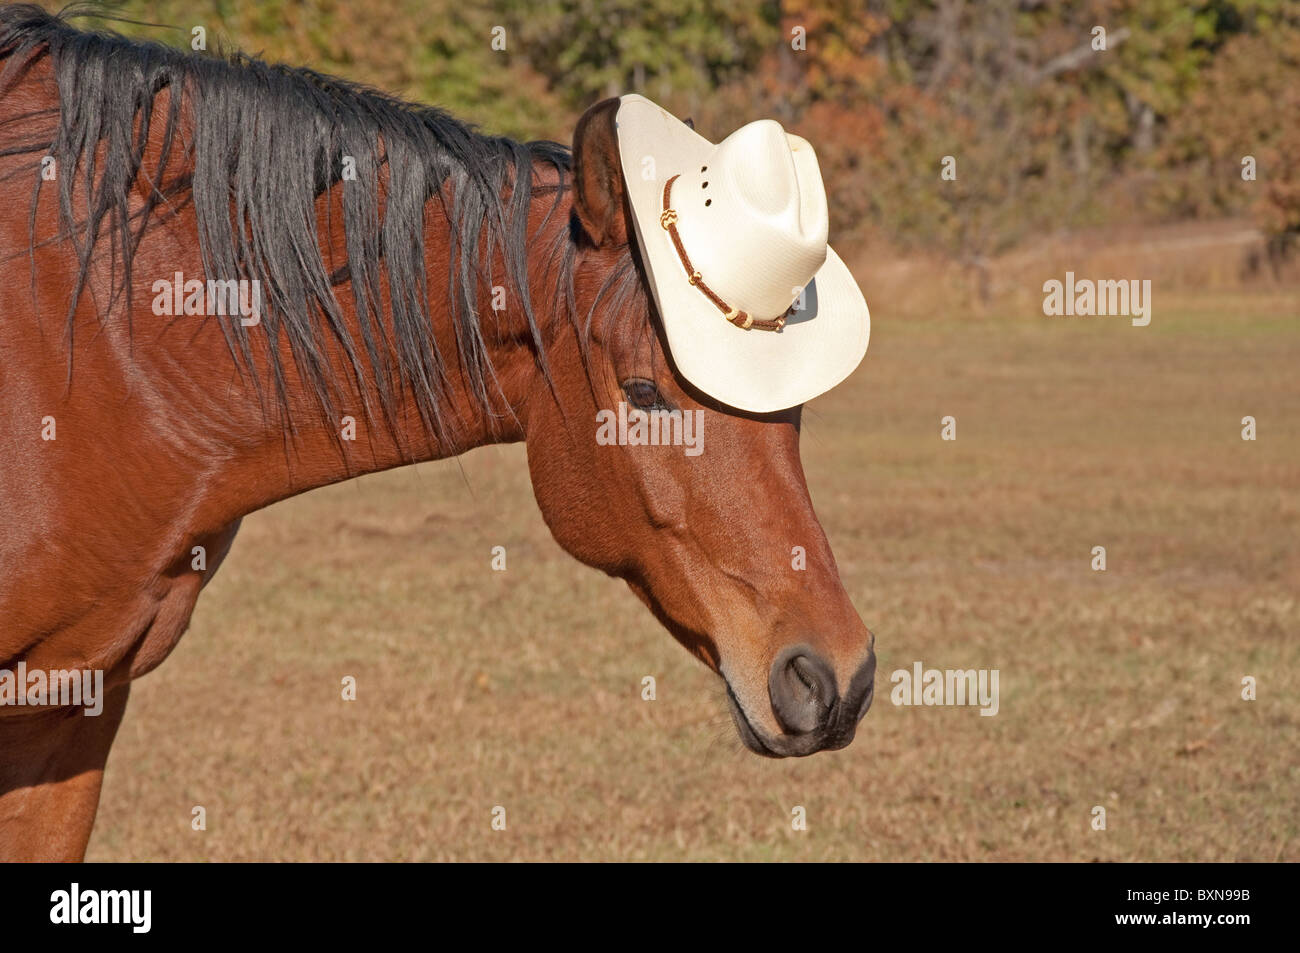 Silly Horse High Resolution Stock Photography And Images Alamy